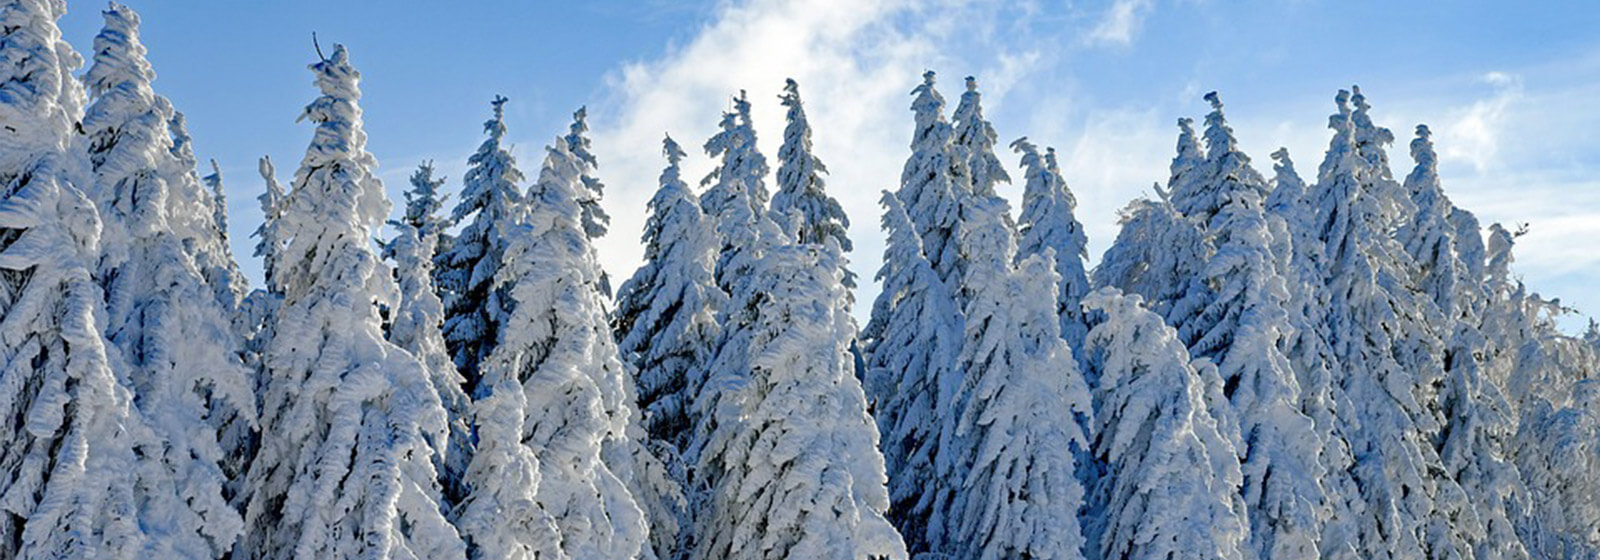 Snow capped trees image slide